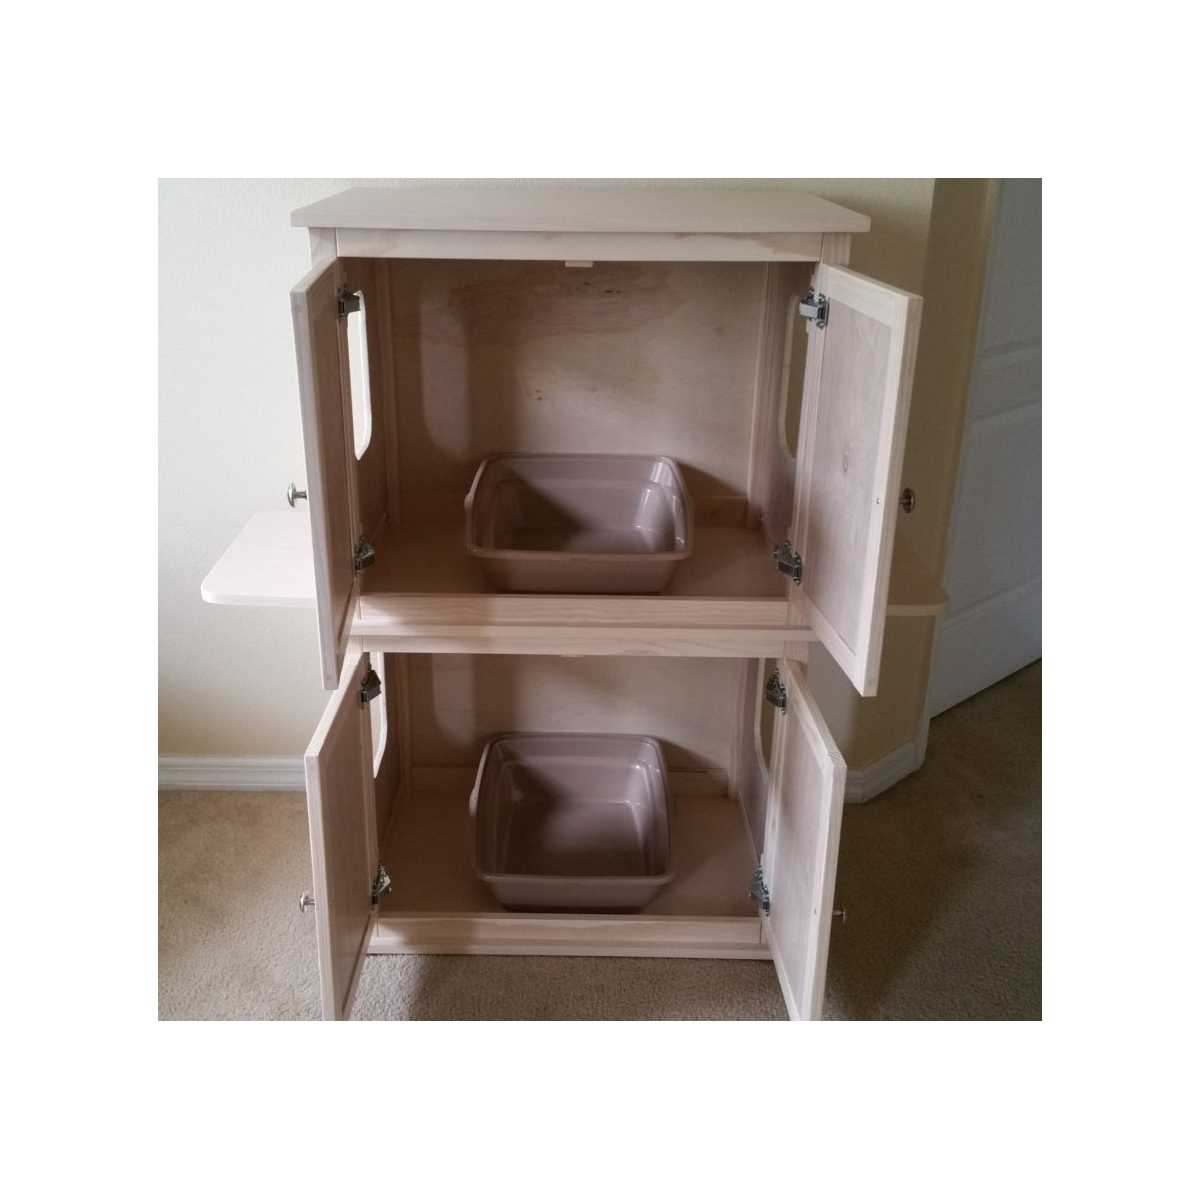 Merveilleux ... Stacked Double Cat Litter Box Cabinet With Odor Absorbing Light ...